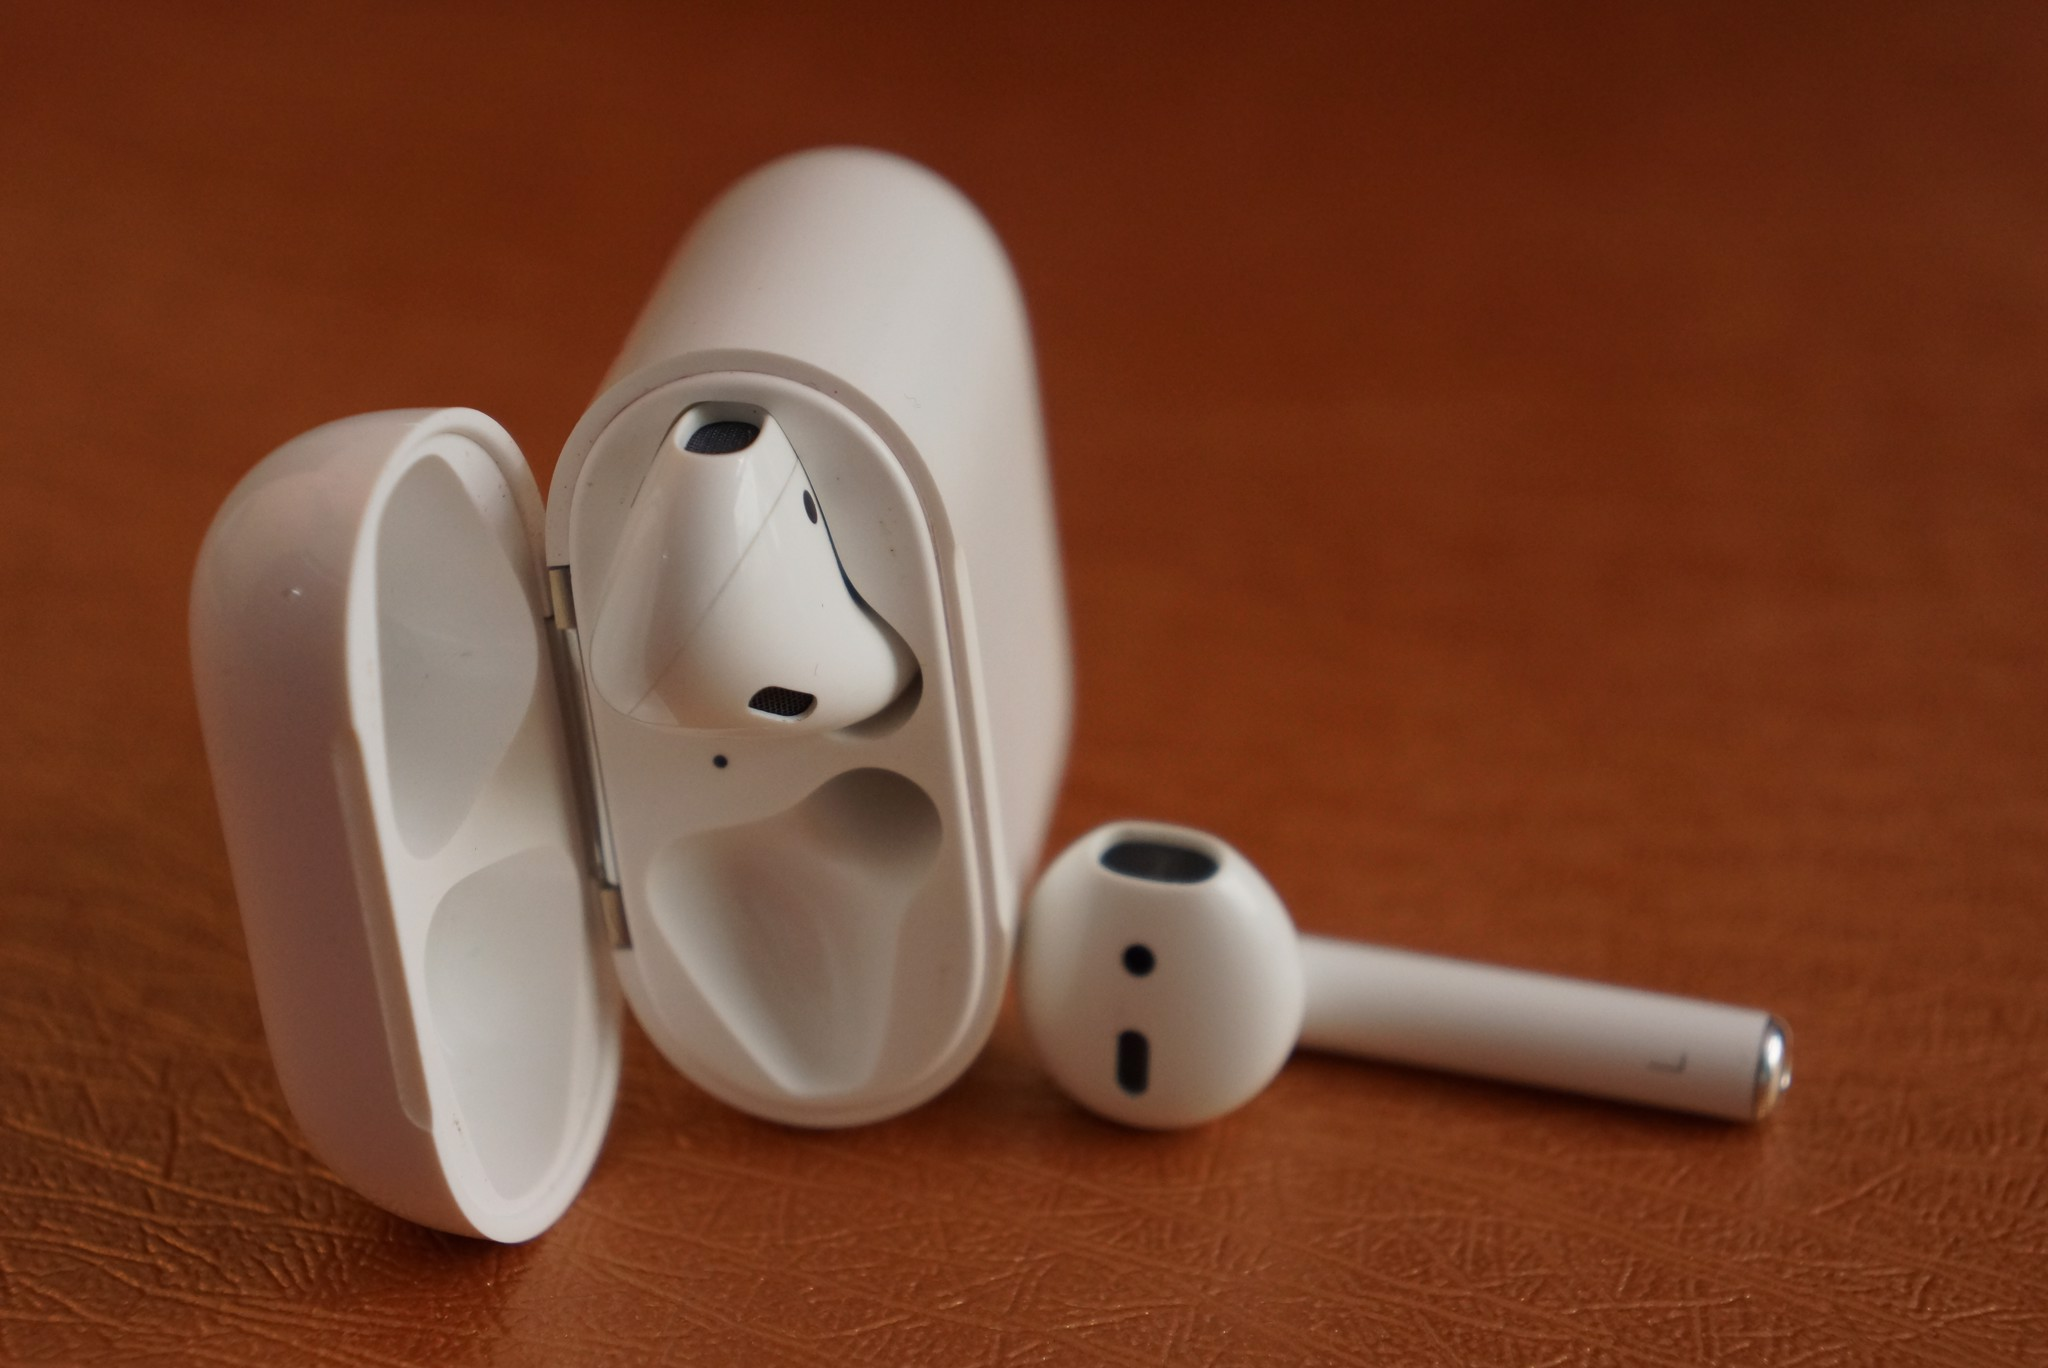 Tai Nghe Bluetooth Apple AirPod like new